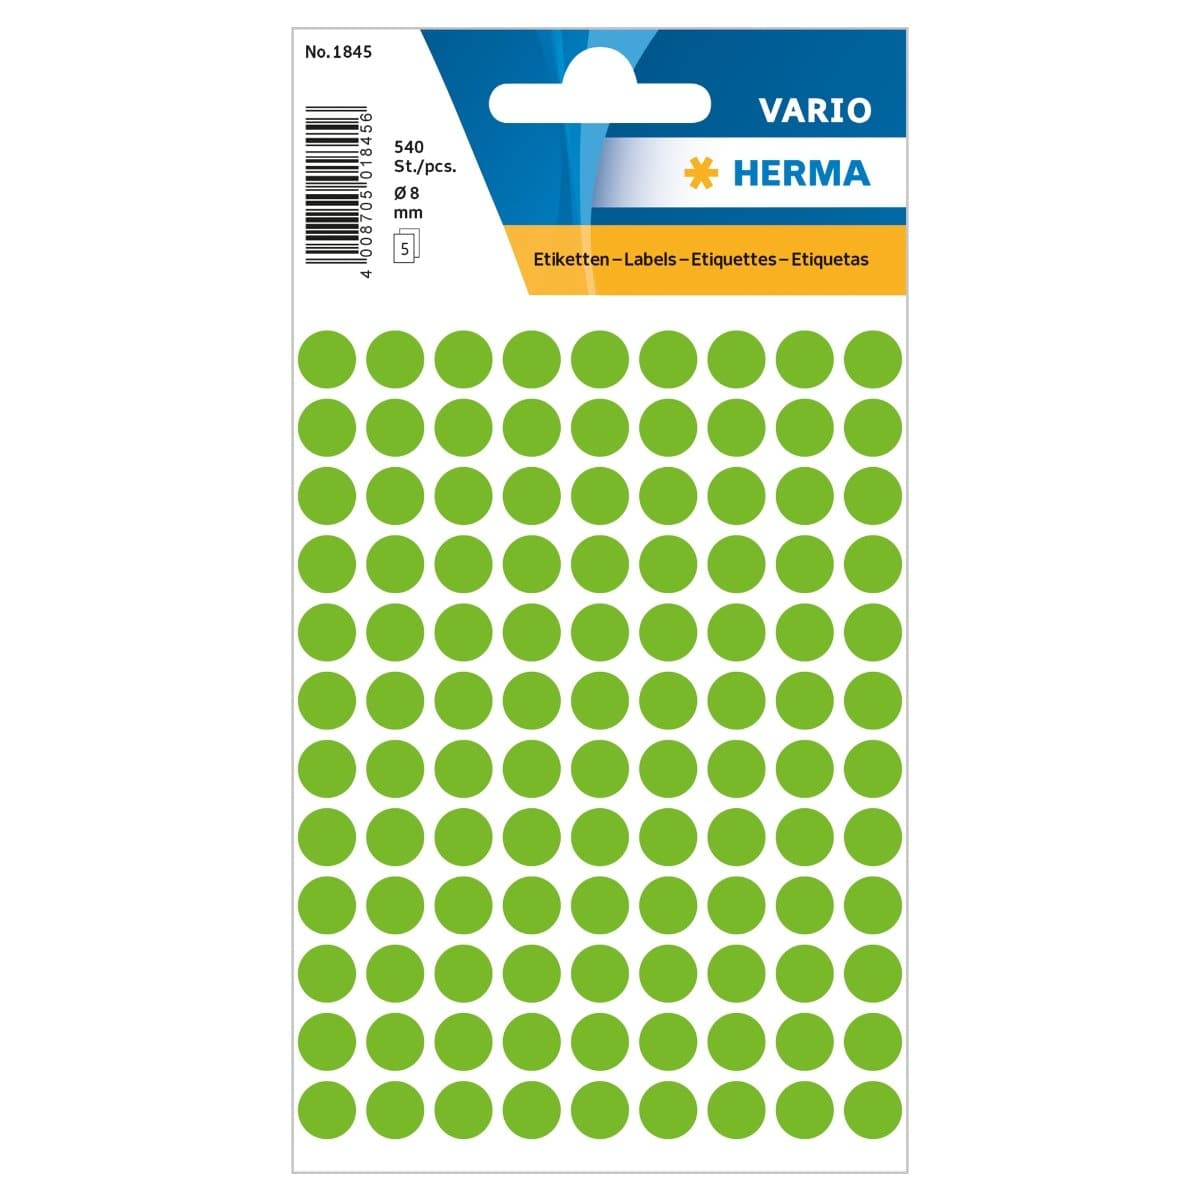 Herma Vario Sticker Color Dots, 8 mm, 540/pack, Green